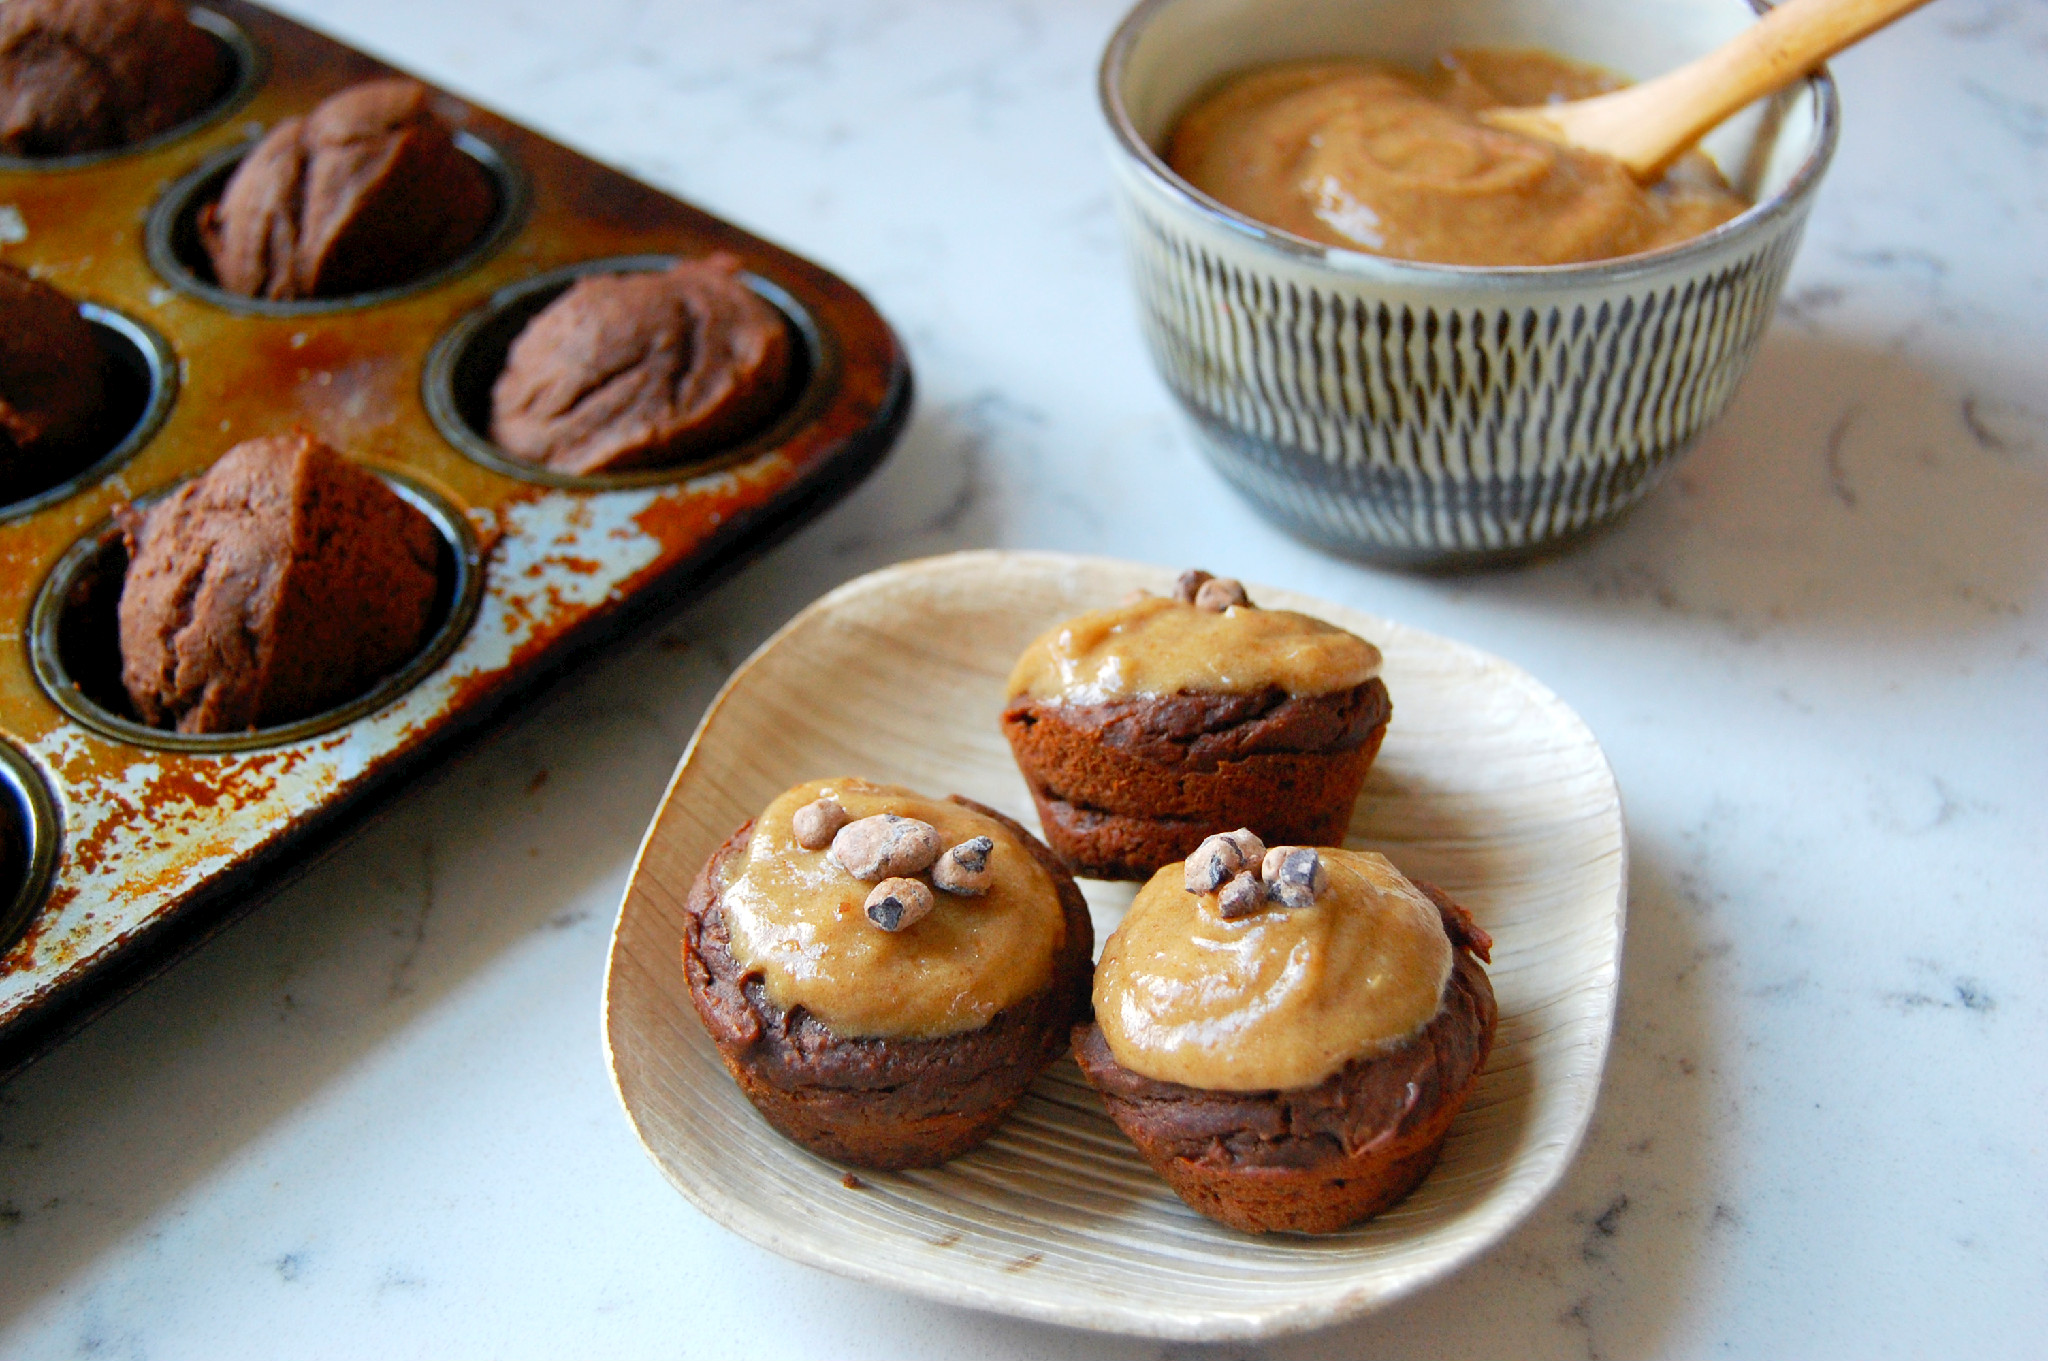 Mini Black Bean Cupcakes with Salted Date Caramel